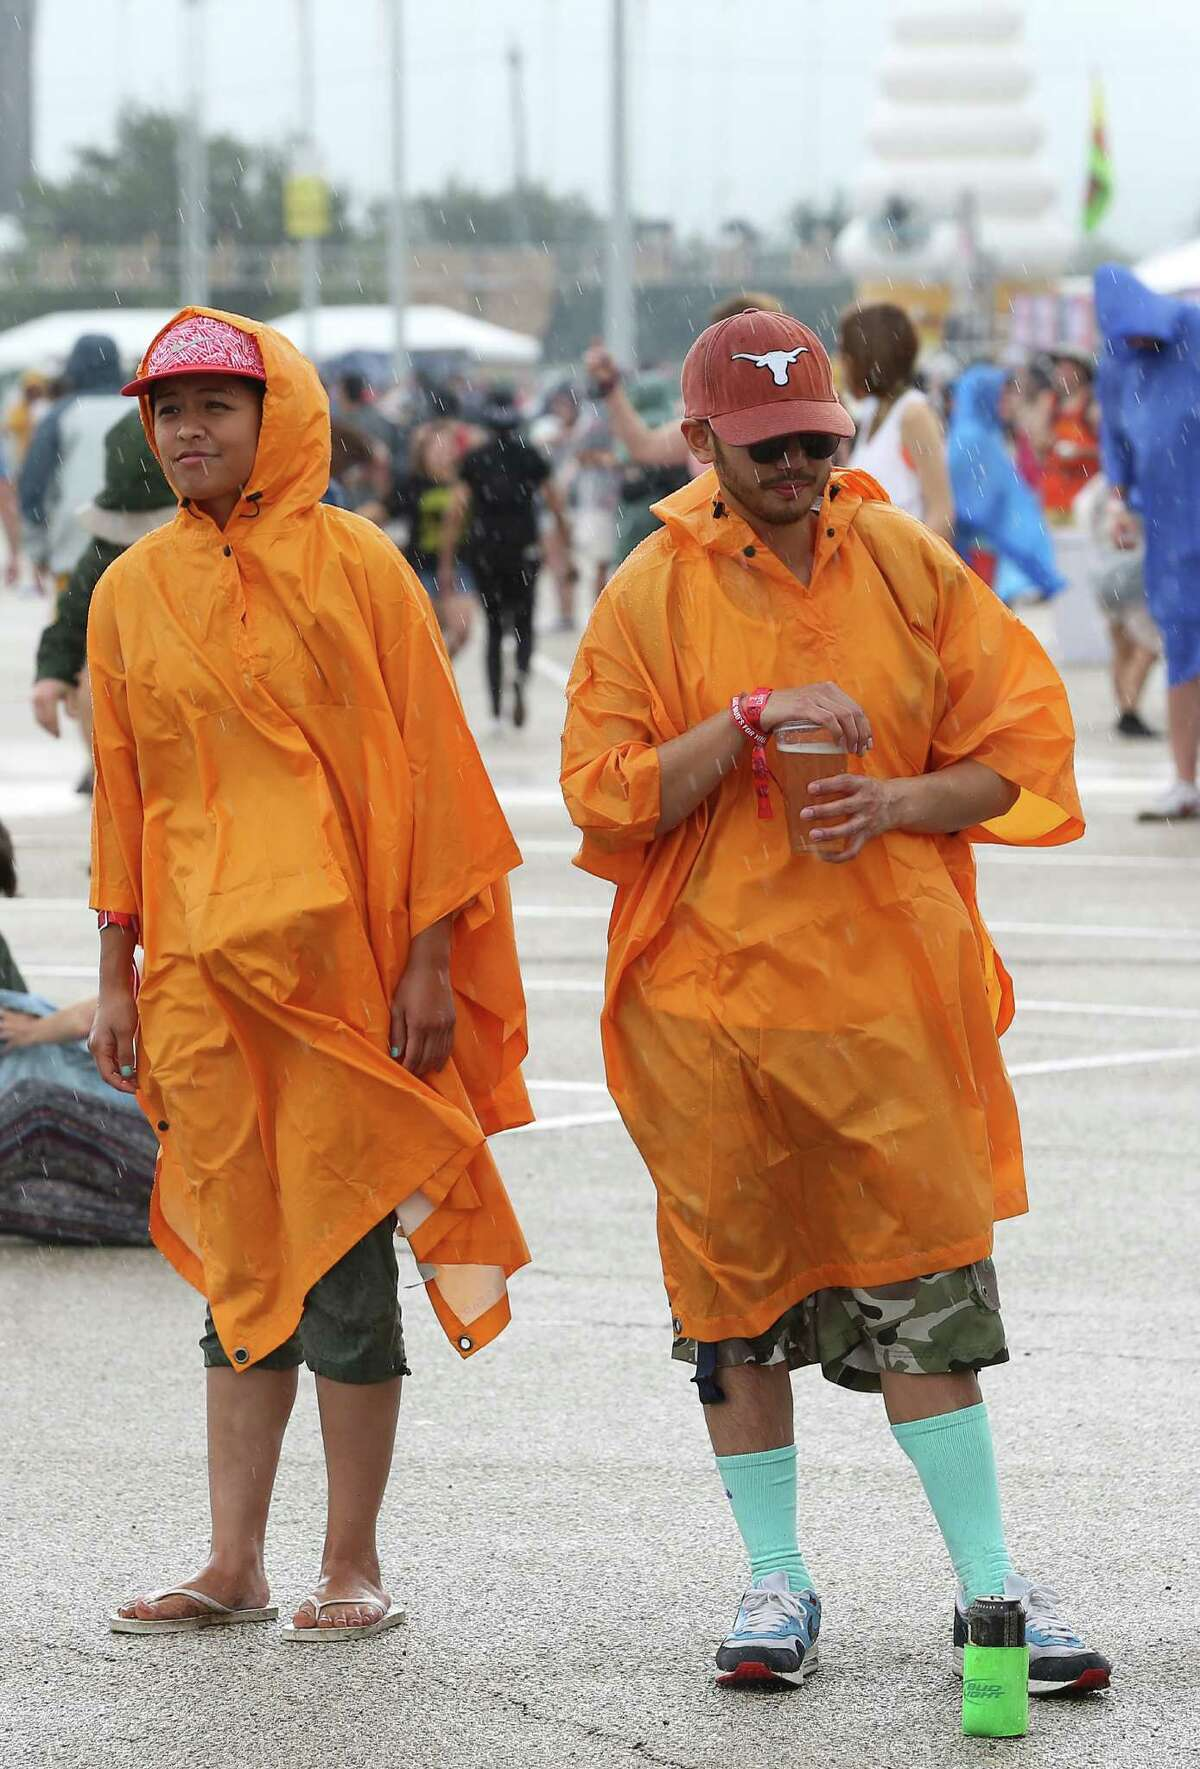 Ira Perez, left, and Miles Machon, stand in the rain at Free Press Summer Fest, at NRG, Saturday, June 4, 2016, in Houston.